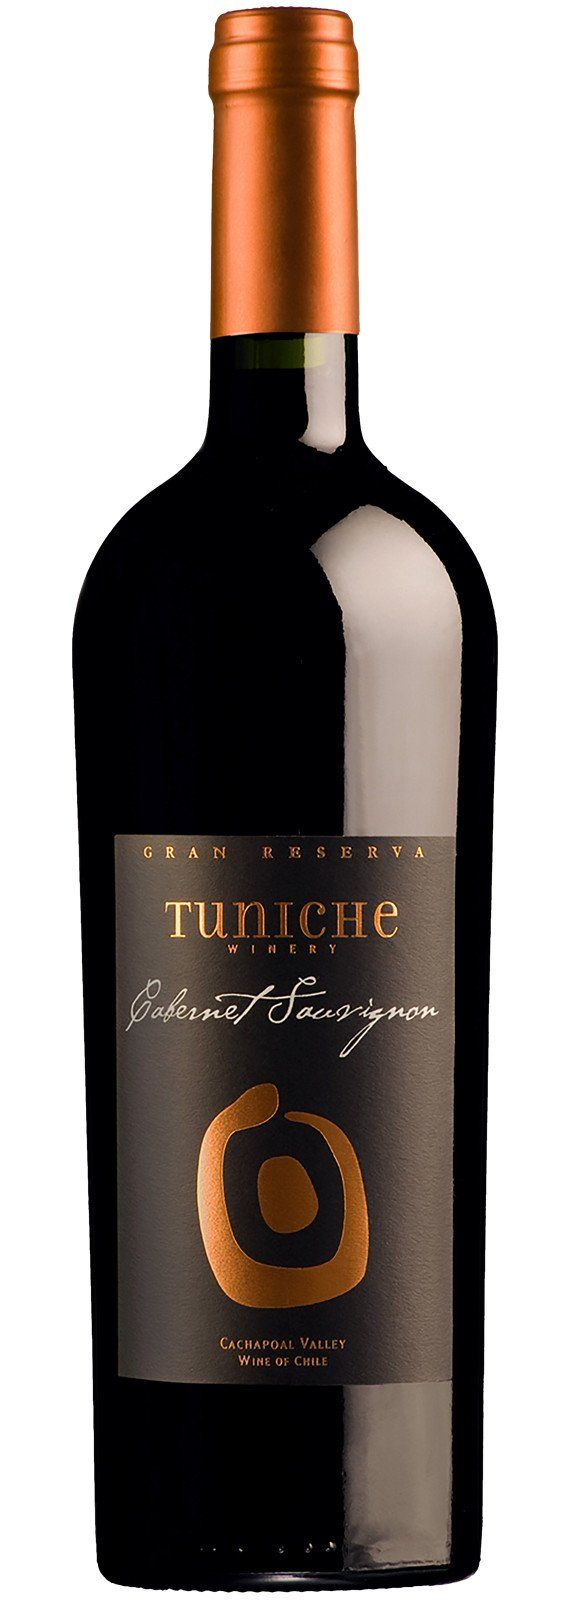 https://clubdelgourmet.com.mx/collections/todos-los-vinos/products/tuniche-cabernet-sauvignon-gran-reserva